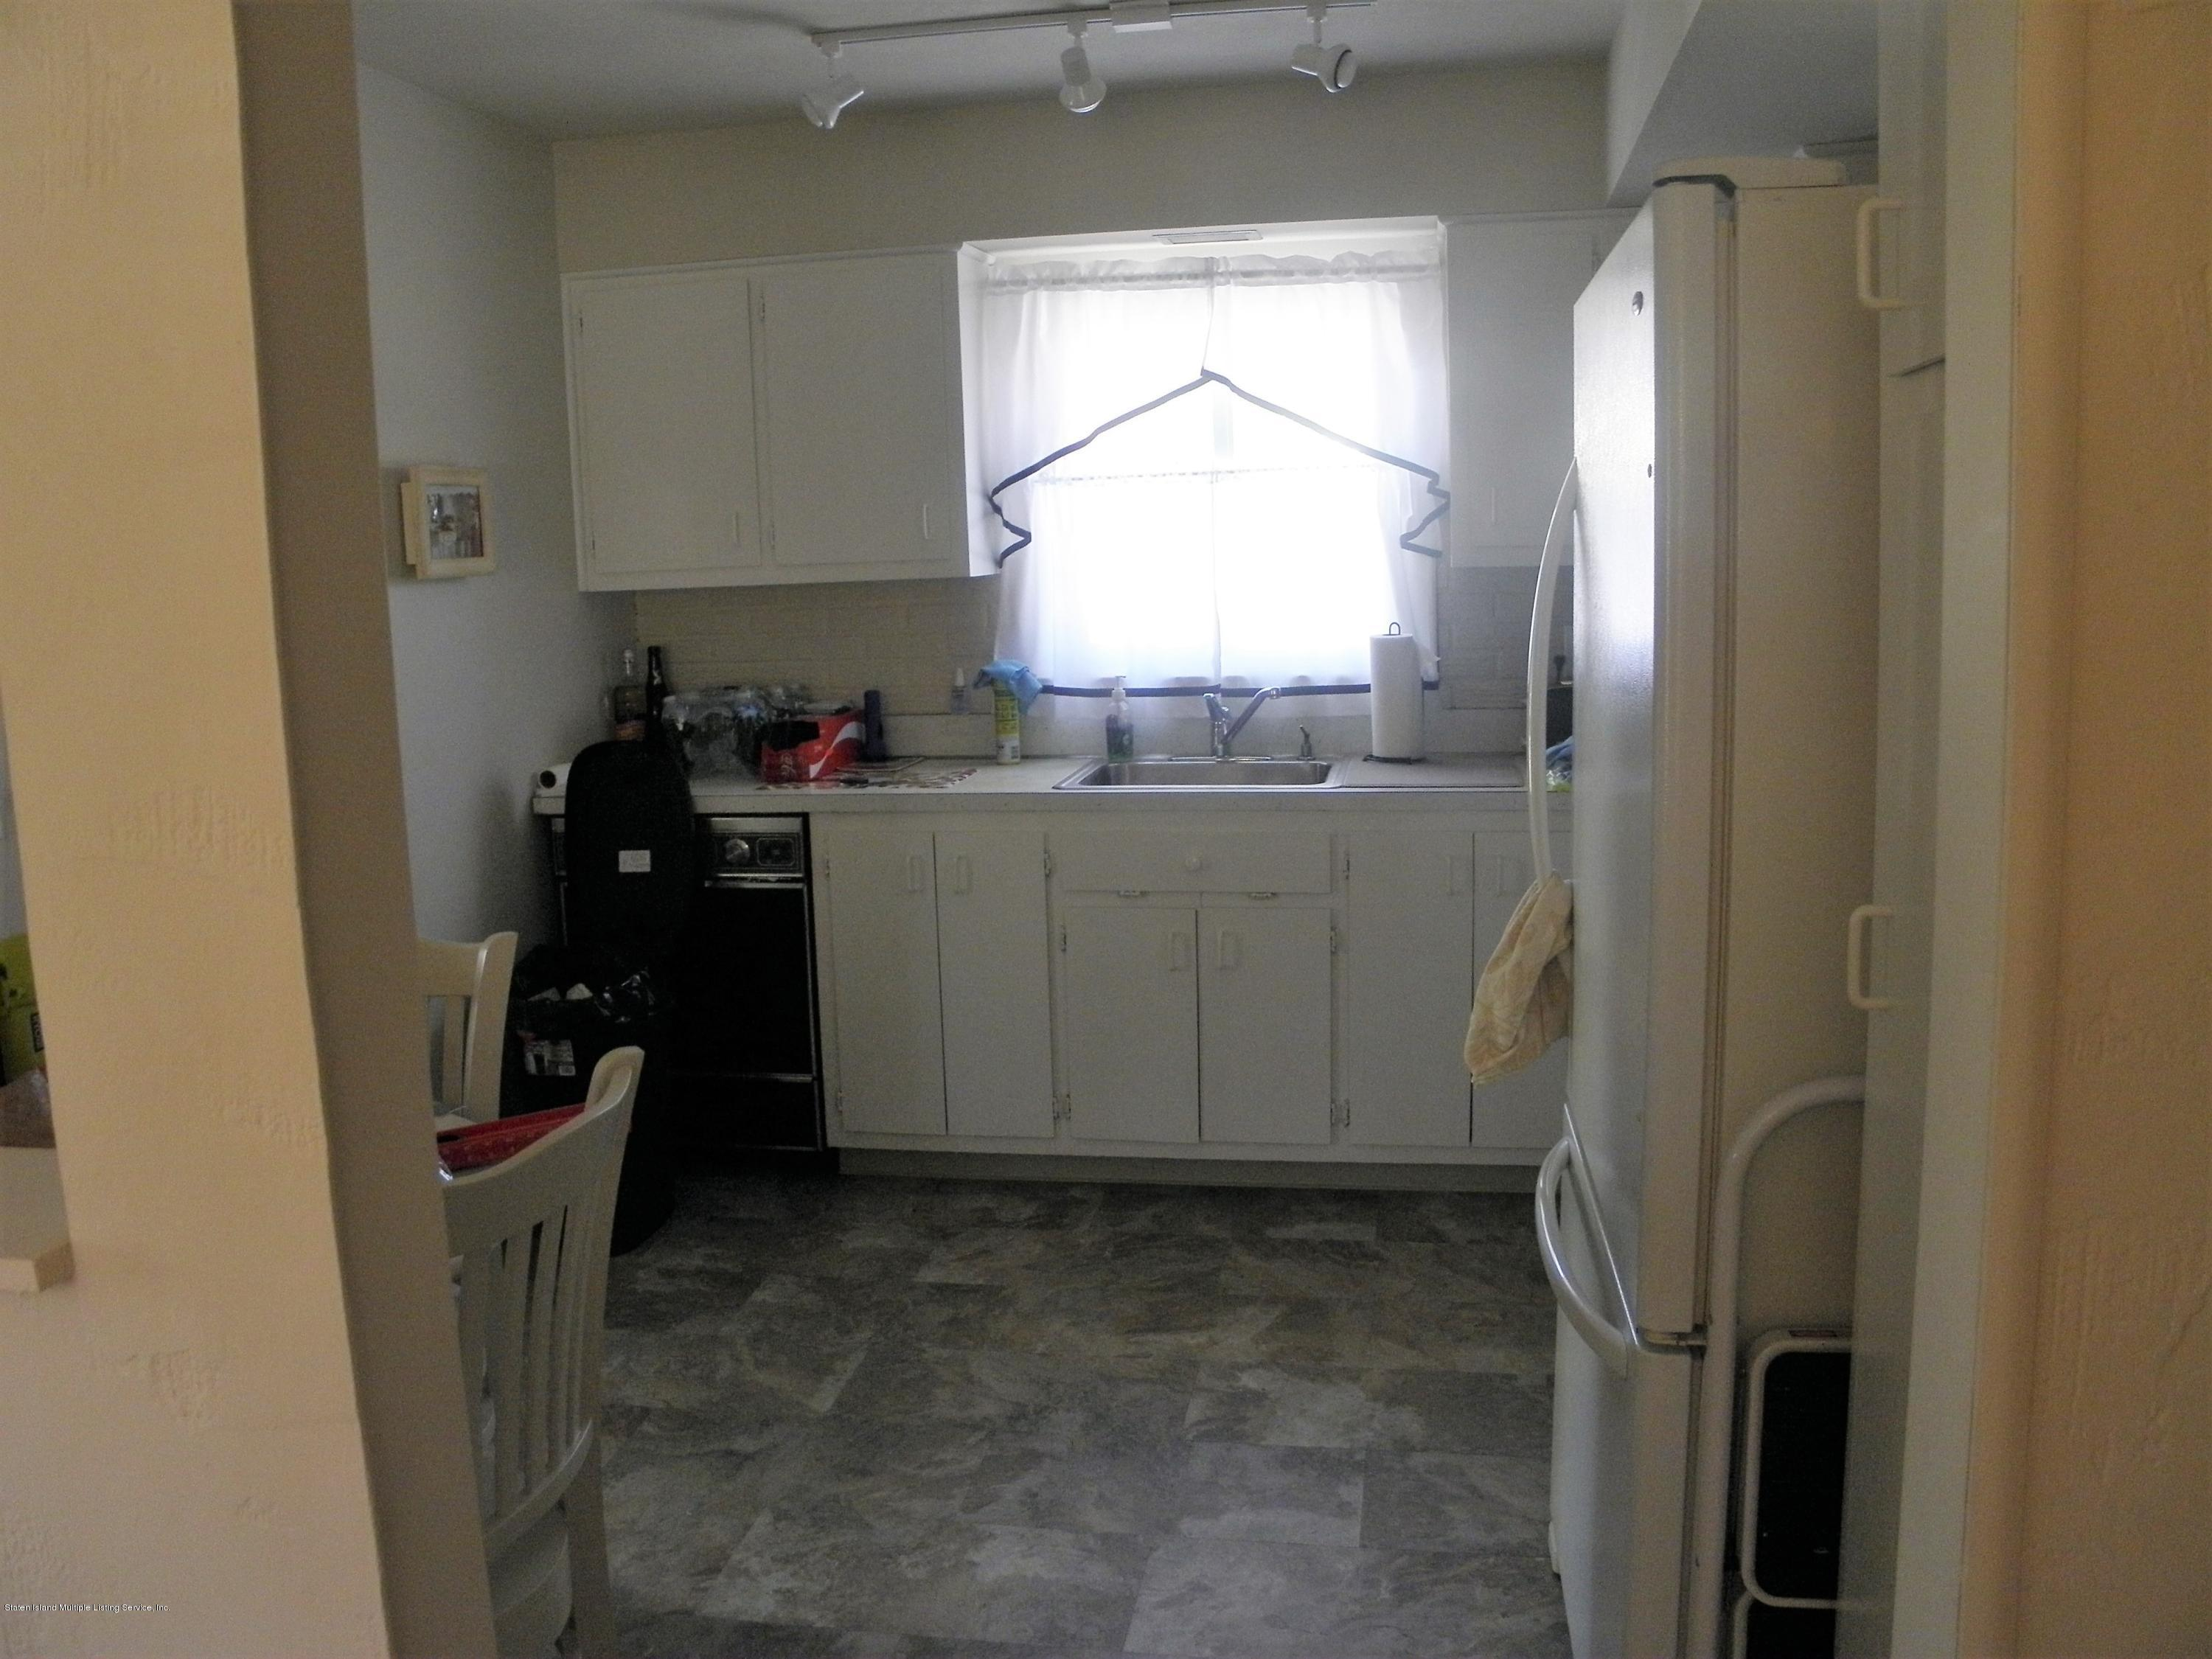 Single Family - Detached 3 Clearmont Avenue  Staten Island, NY 10301, MLS-1128659-5